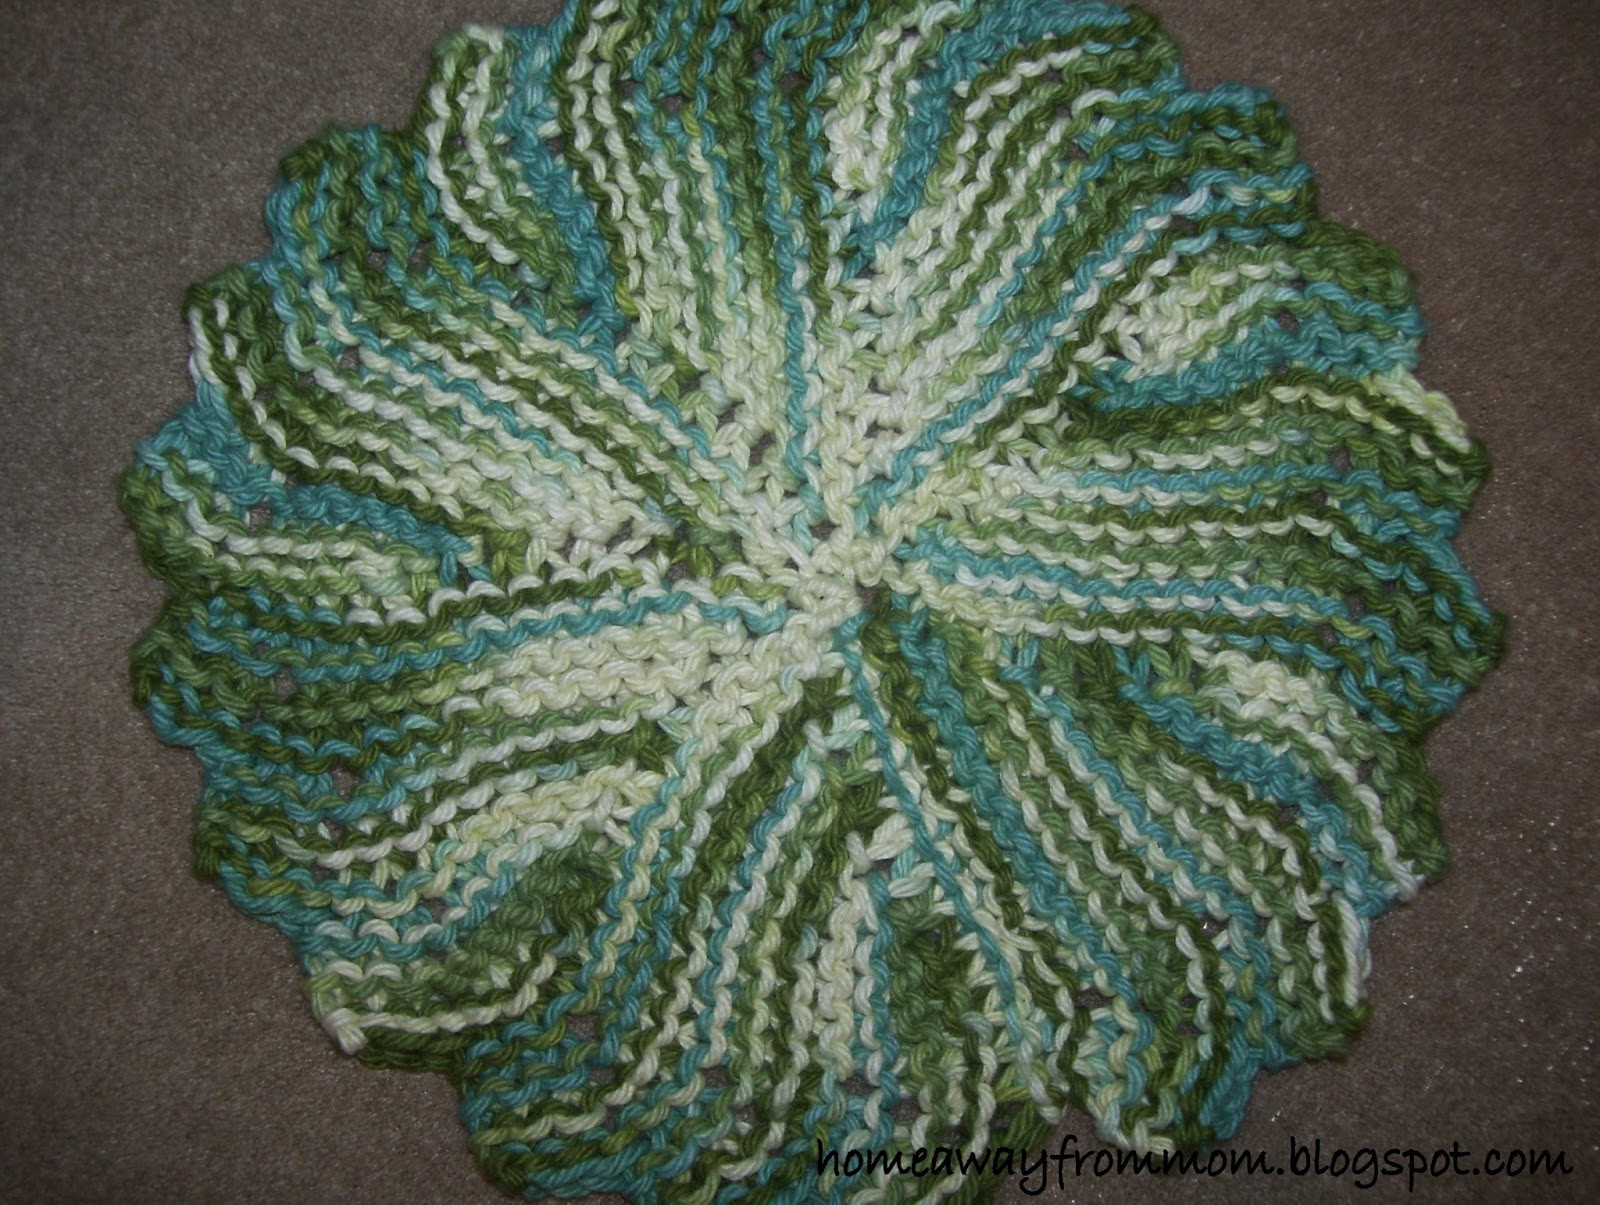 Knitted Dishcloth Elegant Home Away From Mom 2 Knitting Project 3 Round Knit Of Gorgeous 46 Photos Knitted Dishcloth